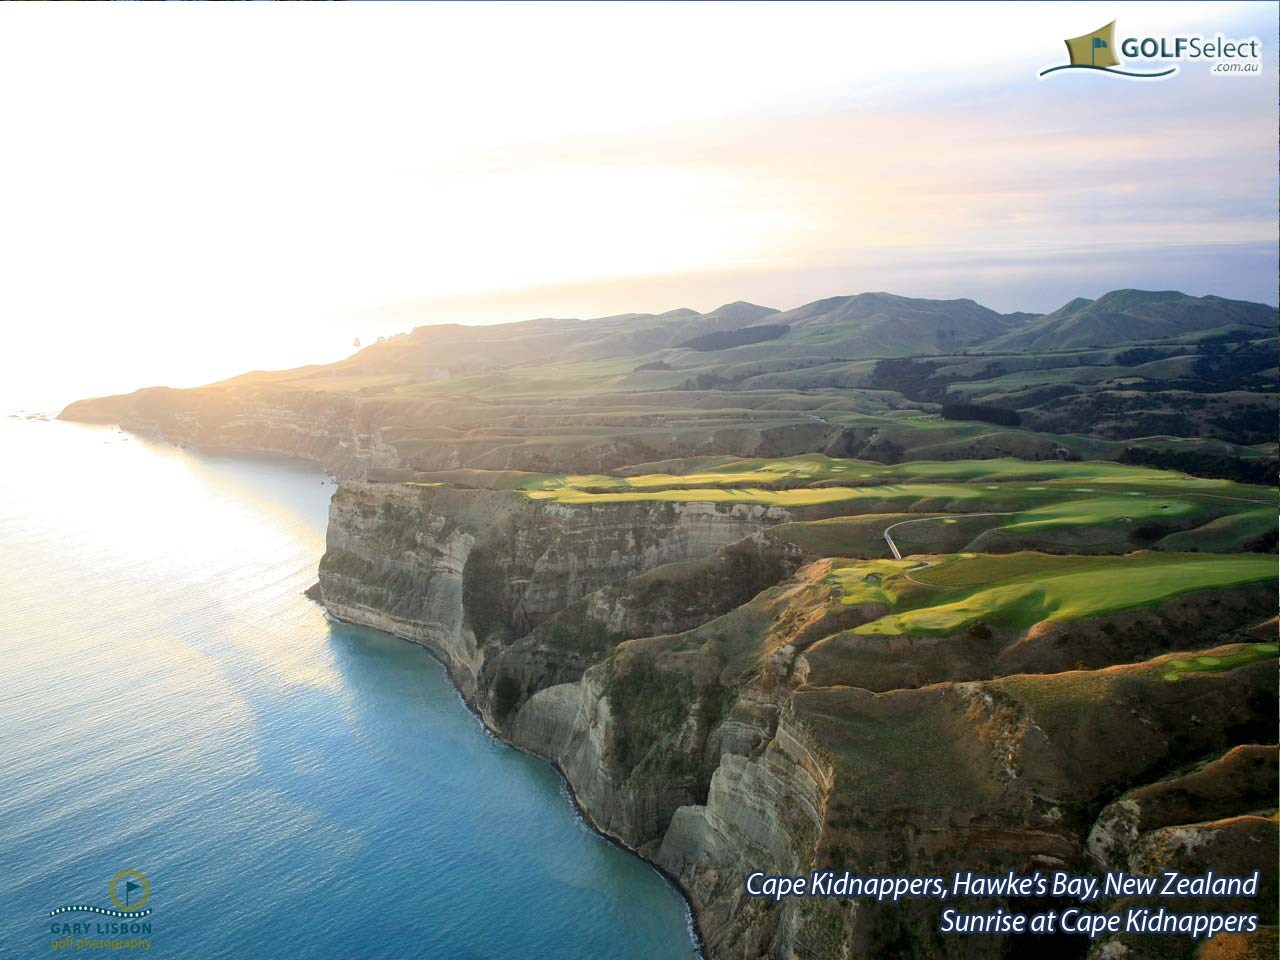 Cape Kidnappers Golf Course Cape Kidnappers at Sunrise